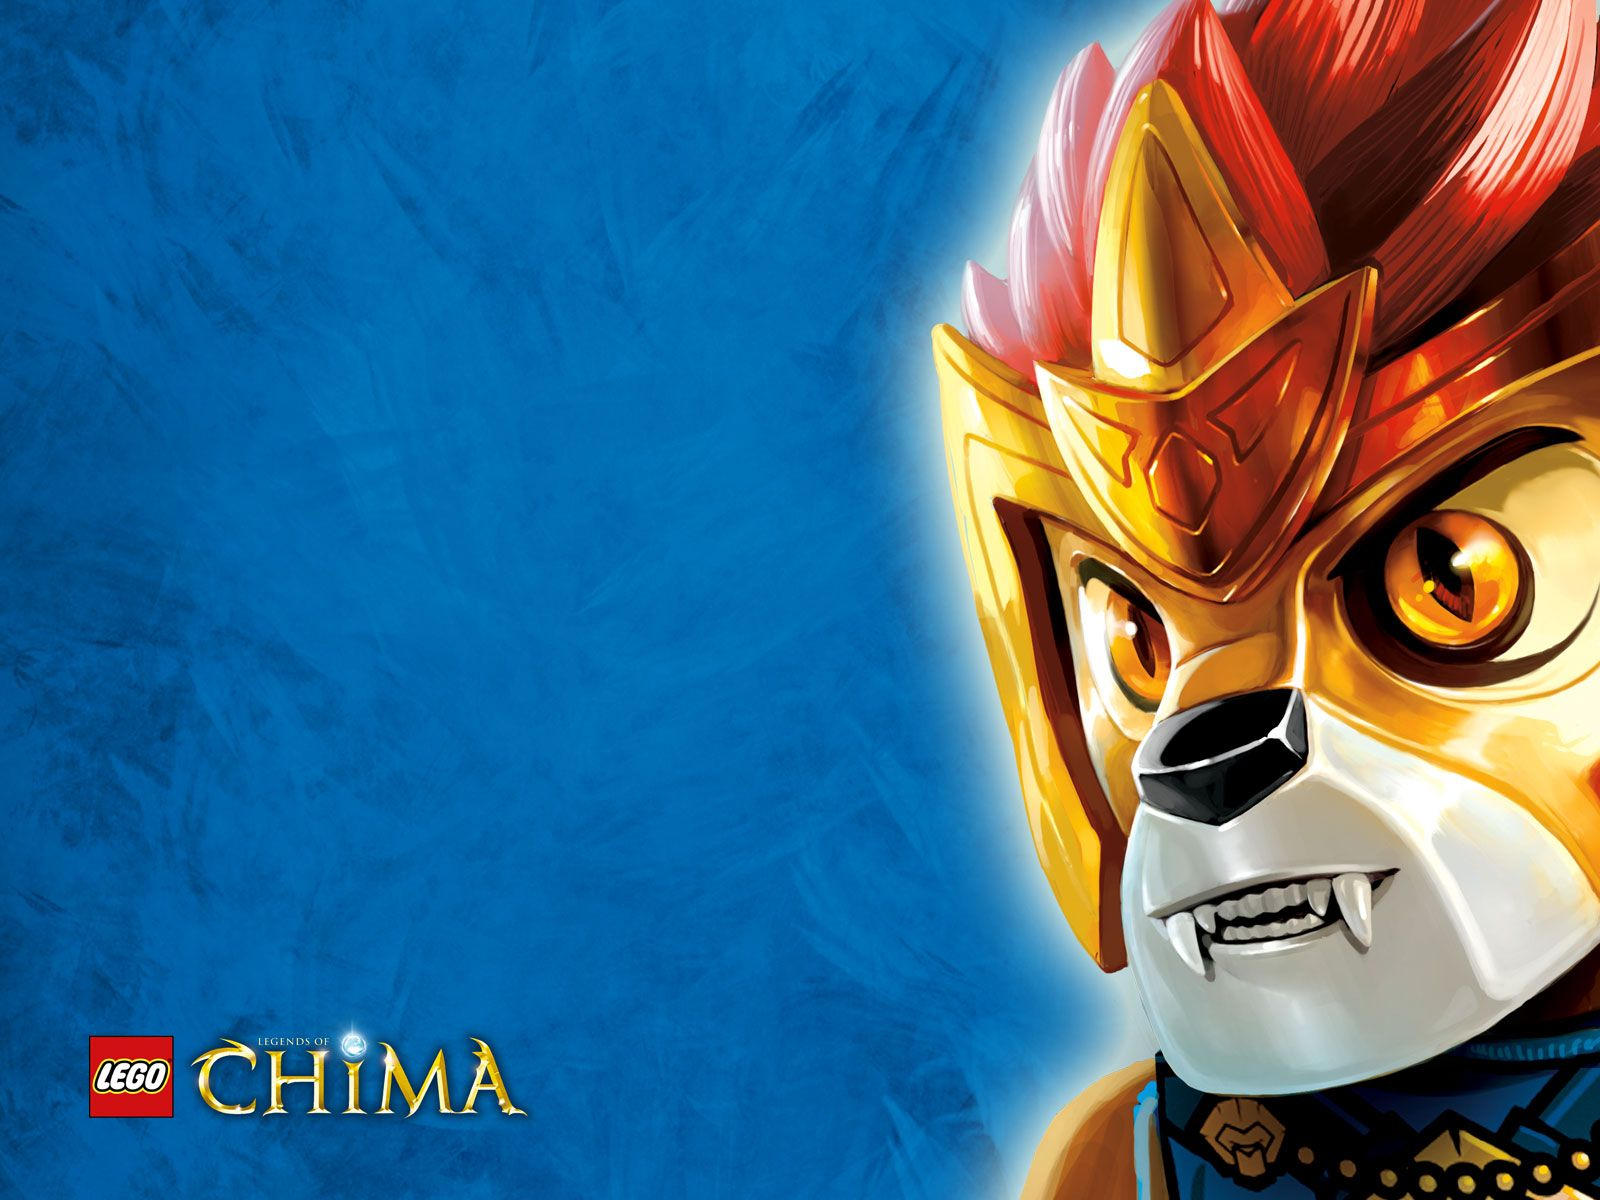 Pin By Ana Linares On Party Lego Chima Lego Chima Party Lego Movie Party